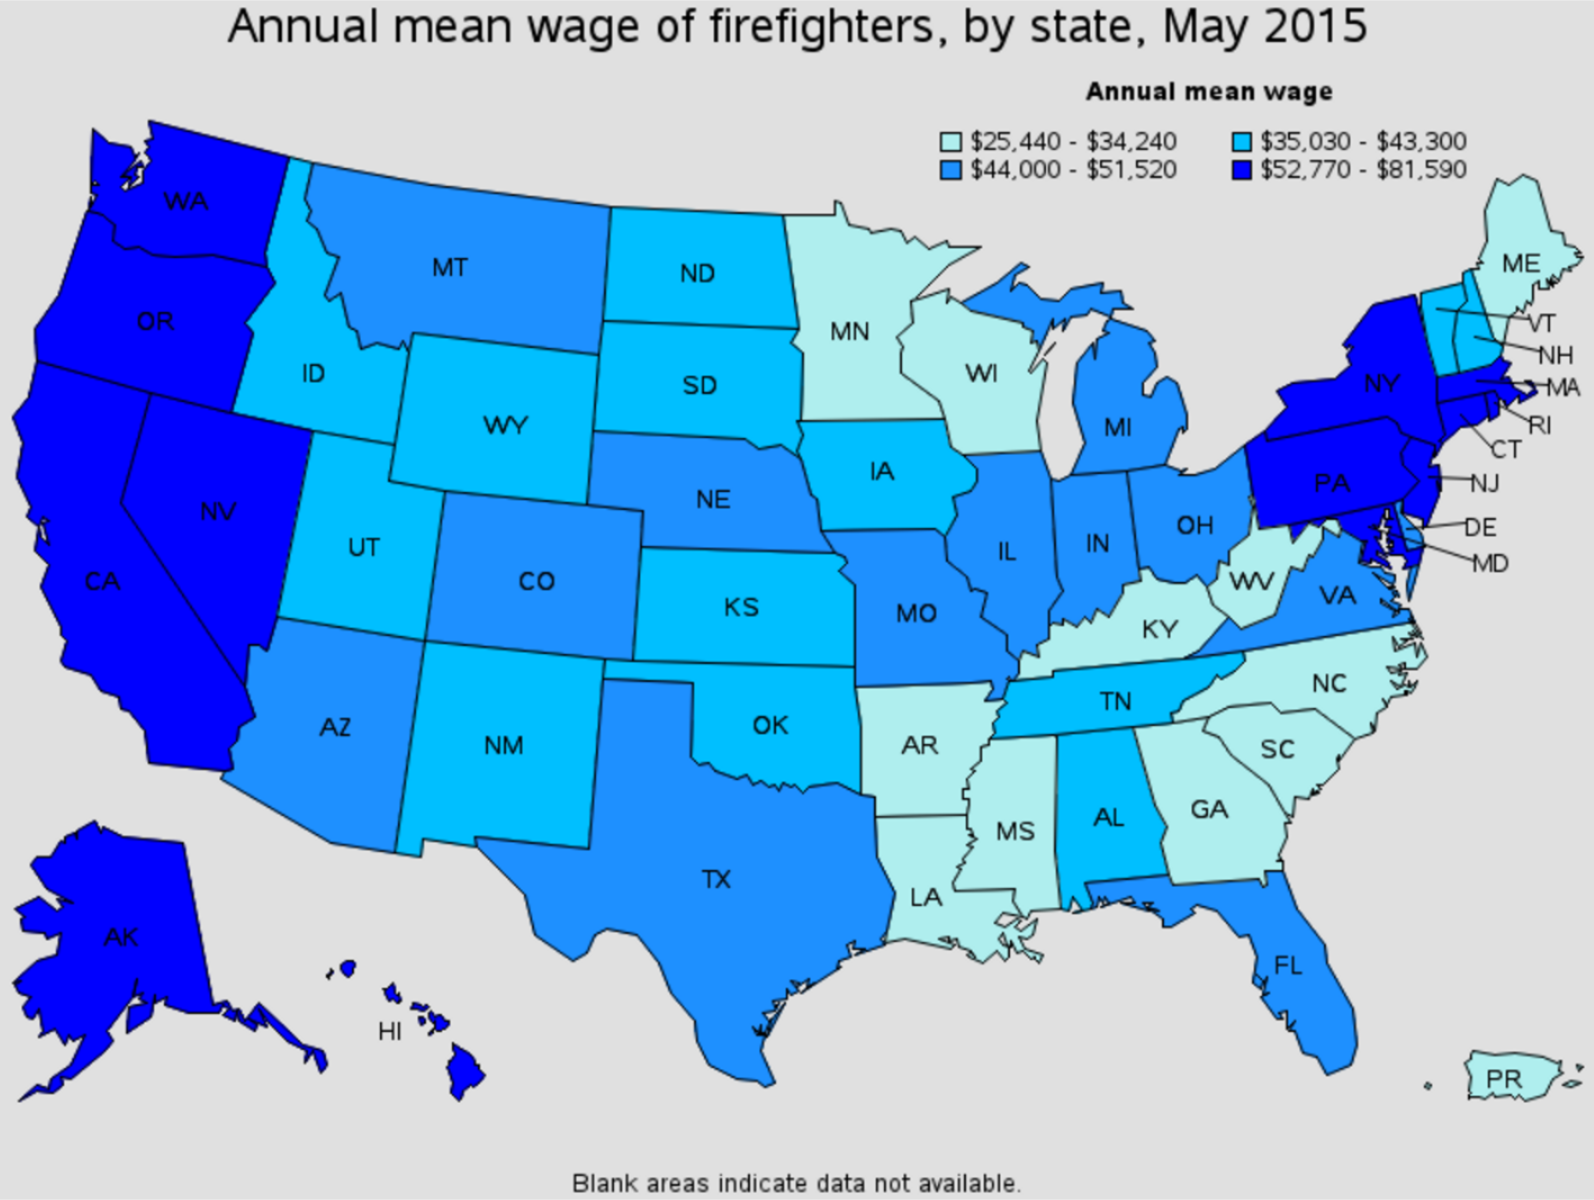 firefighter average salary by state Winfield Kansas